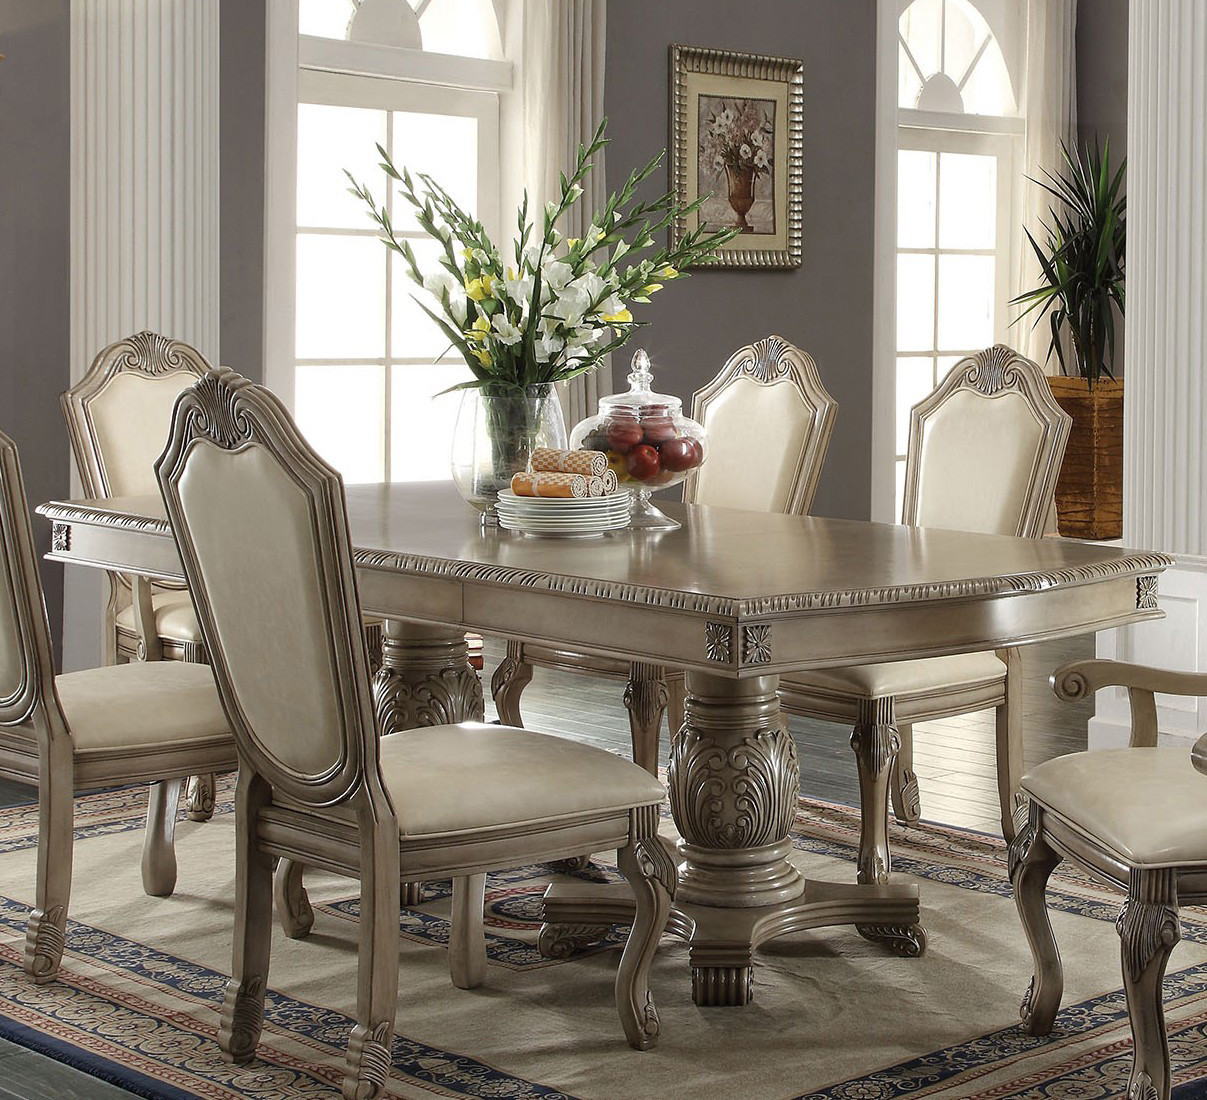 ... Antique White Pedestal Dining Table ... : white pedestal dining table set - pezcame.com